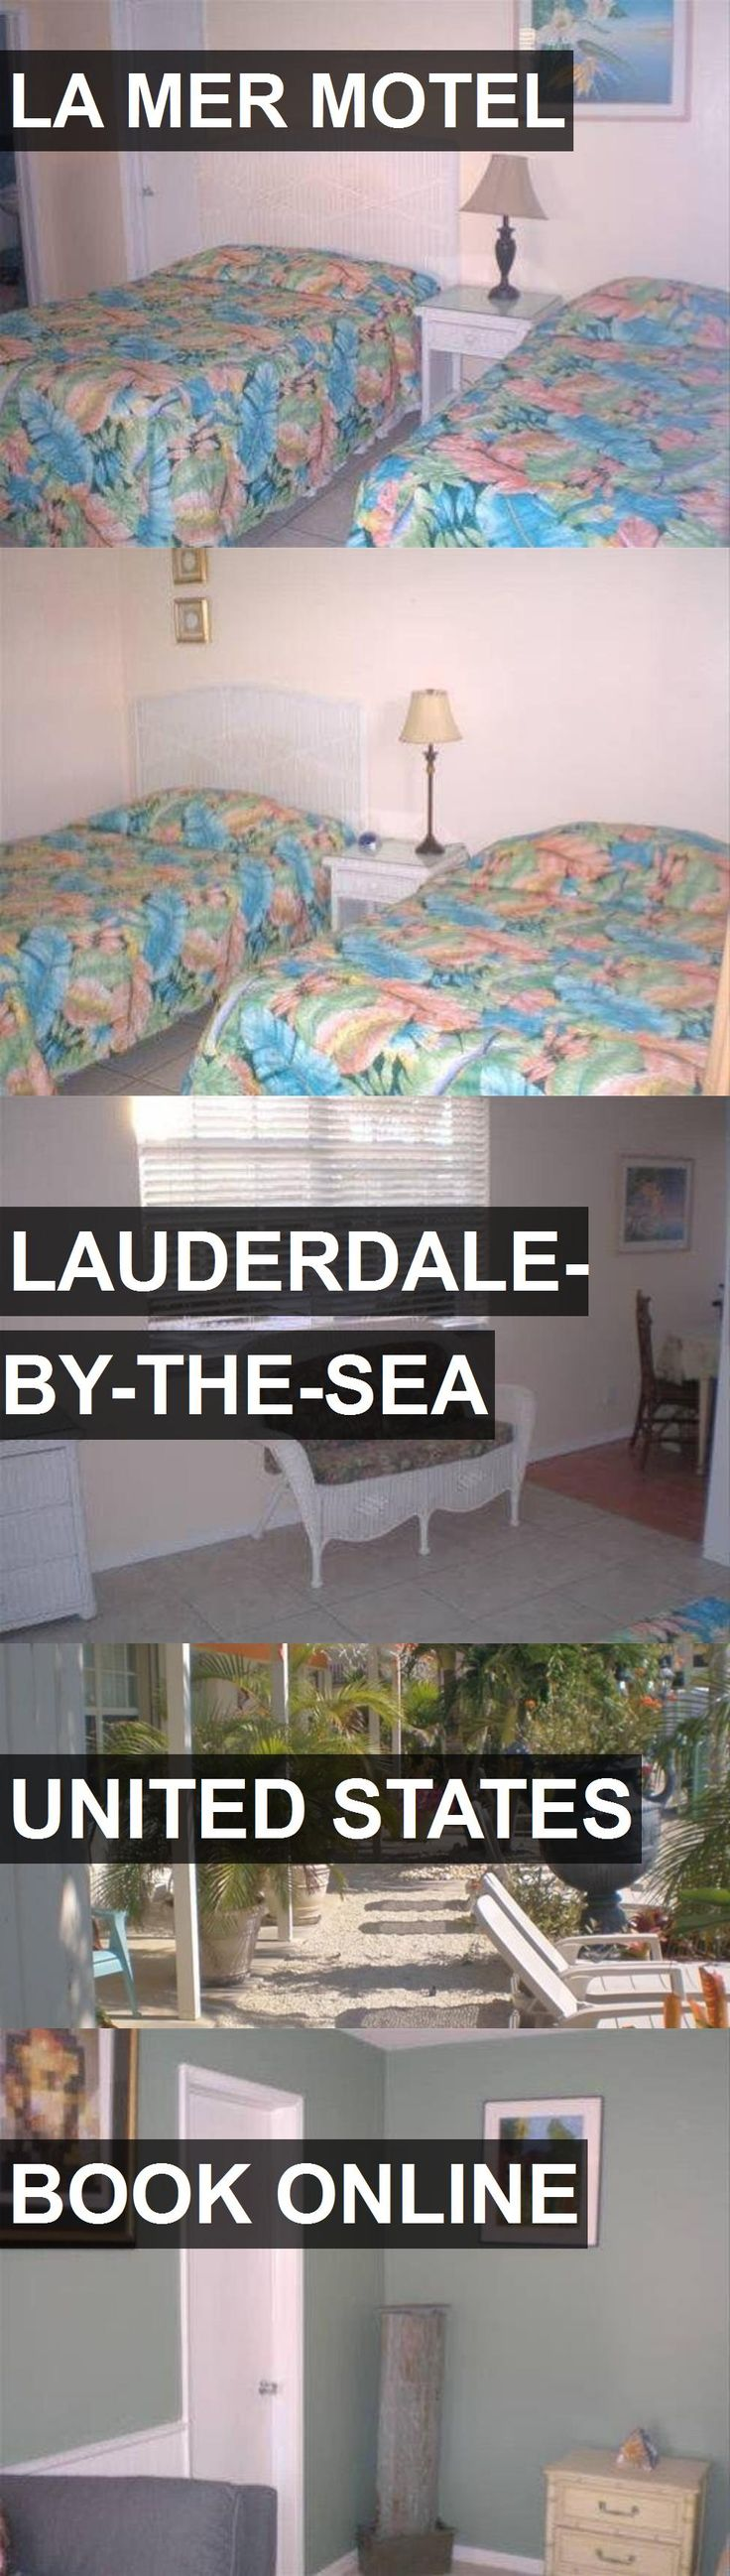 Hotel LA MER MOTEL in Lauderdale-By-The-Sea, United States. For more information, photos, reviews and best prices please follow the link. #UnitedStates #Lauderdale-By-The-Sea #LAMERMOTEL #hotel #travel #vacation